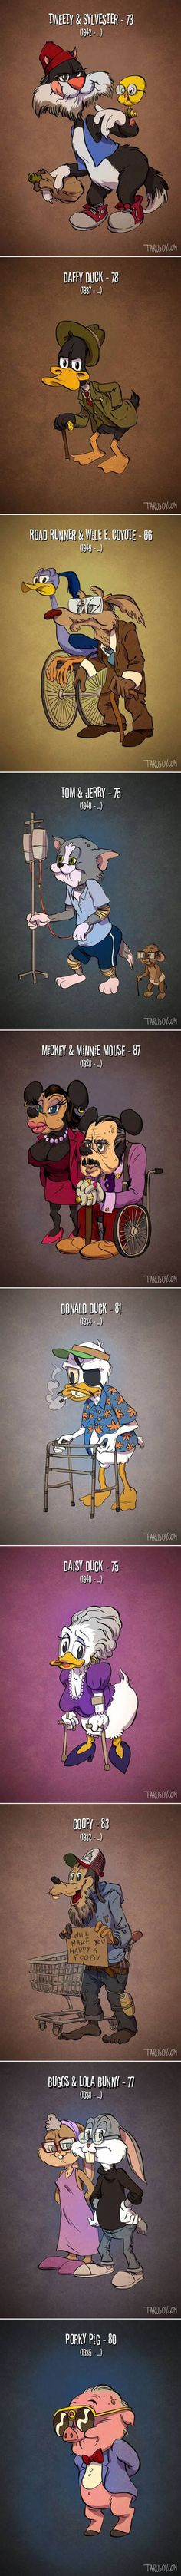 If Cartoon Characters Looked Their Actual Age